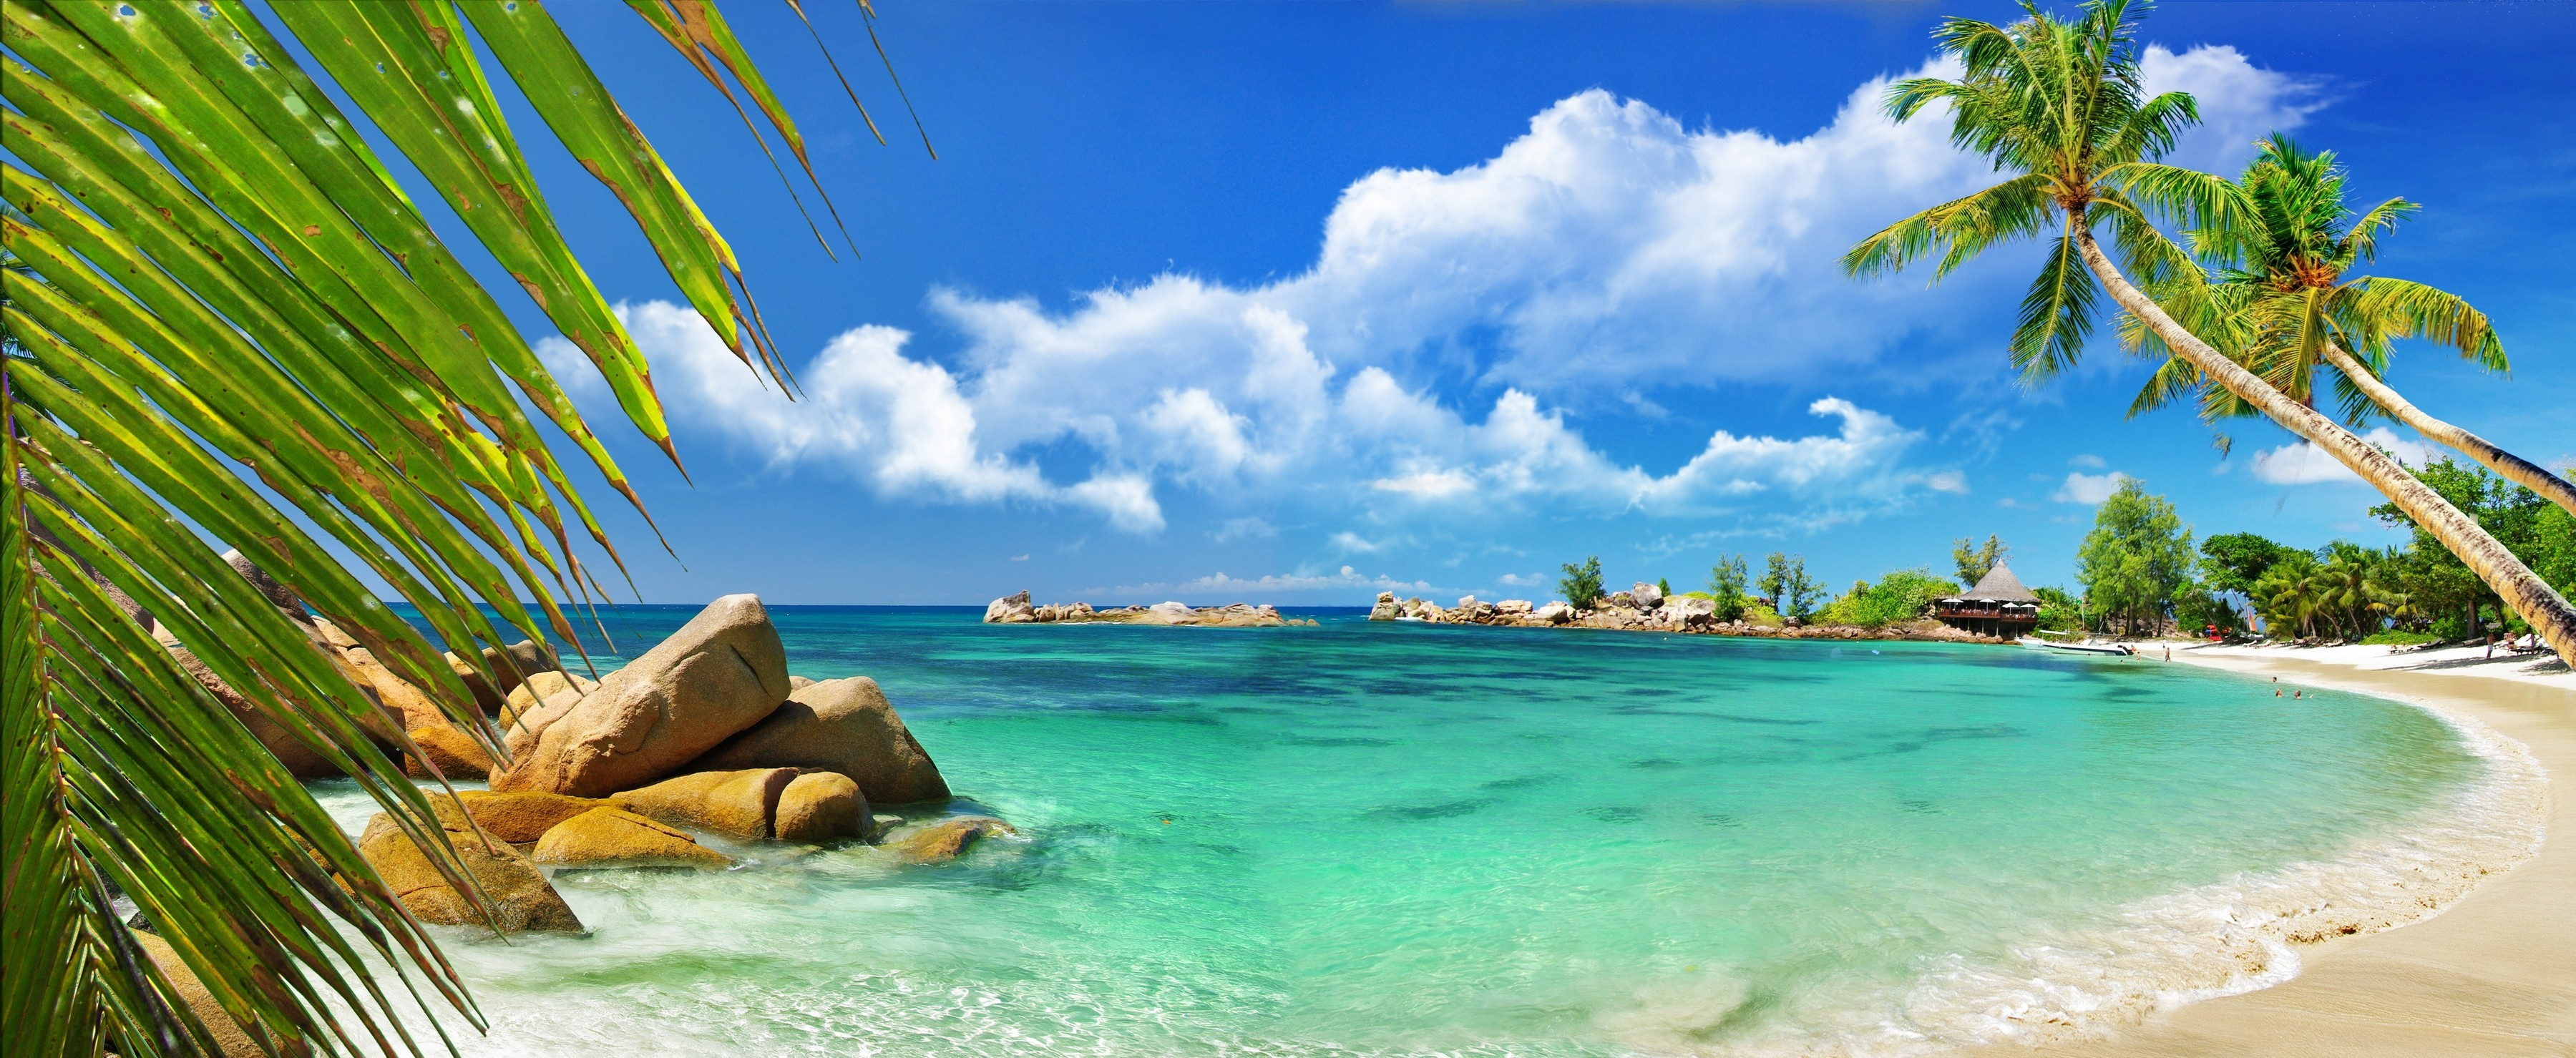 Seychelles Full Hd Fond D 233 Cran And Arri 232 Re Plan 3600x1479 Id 526628